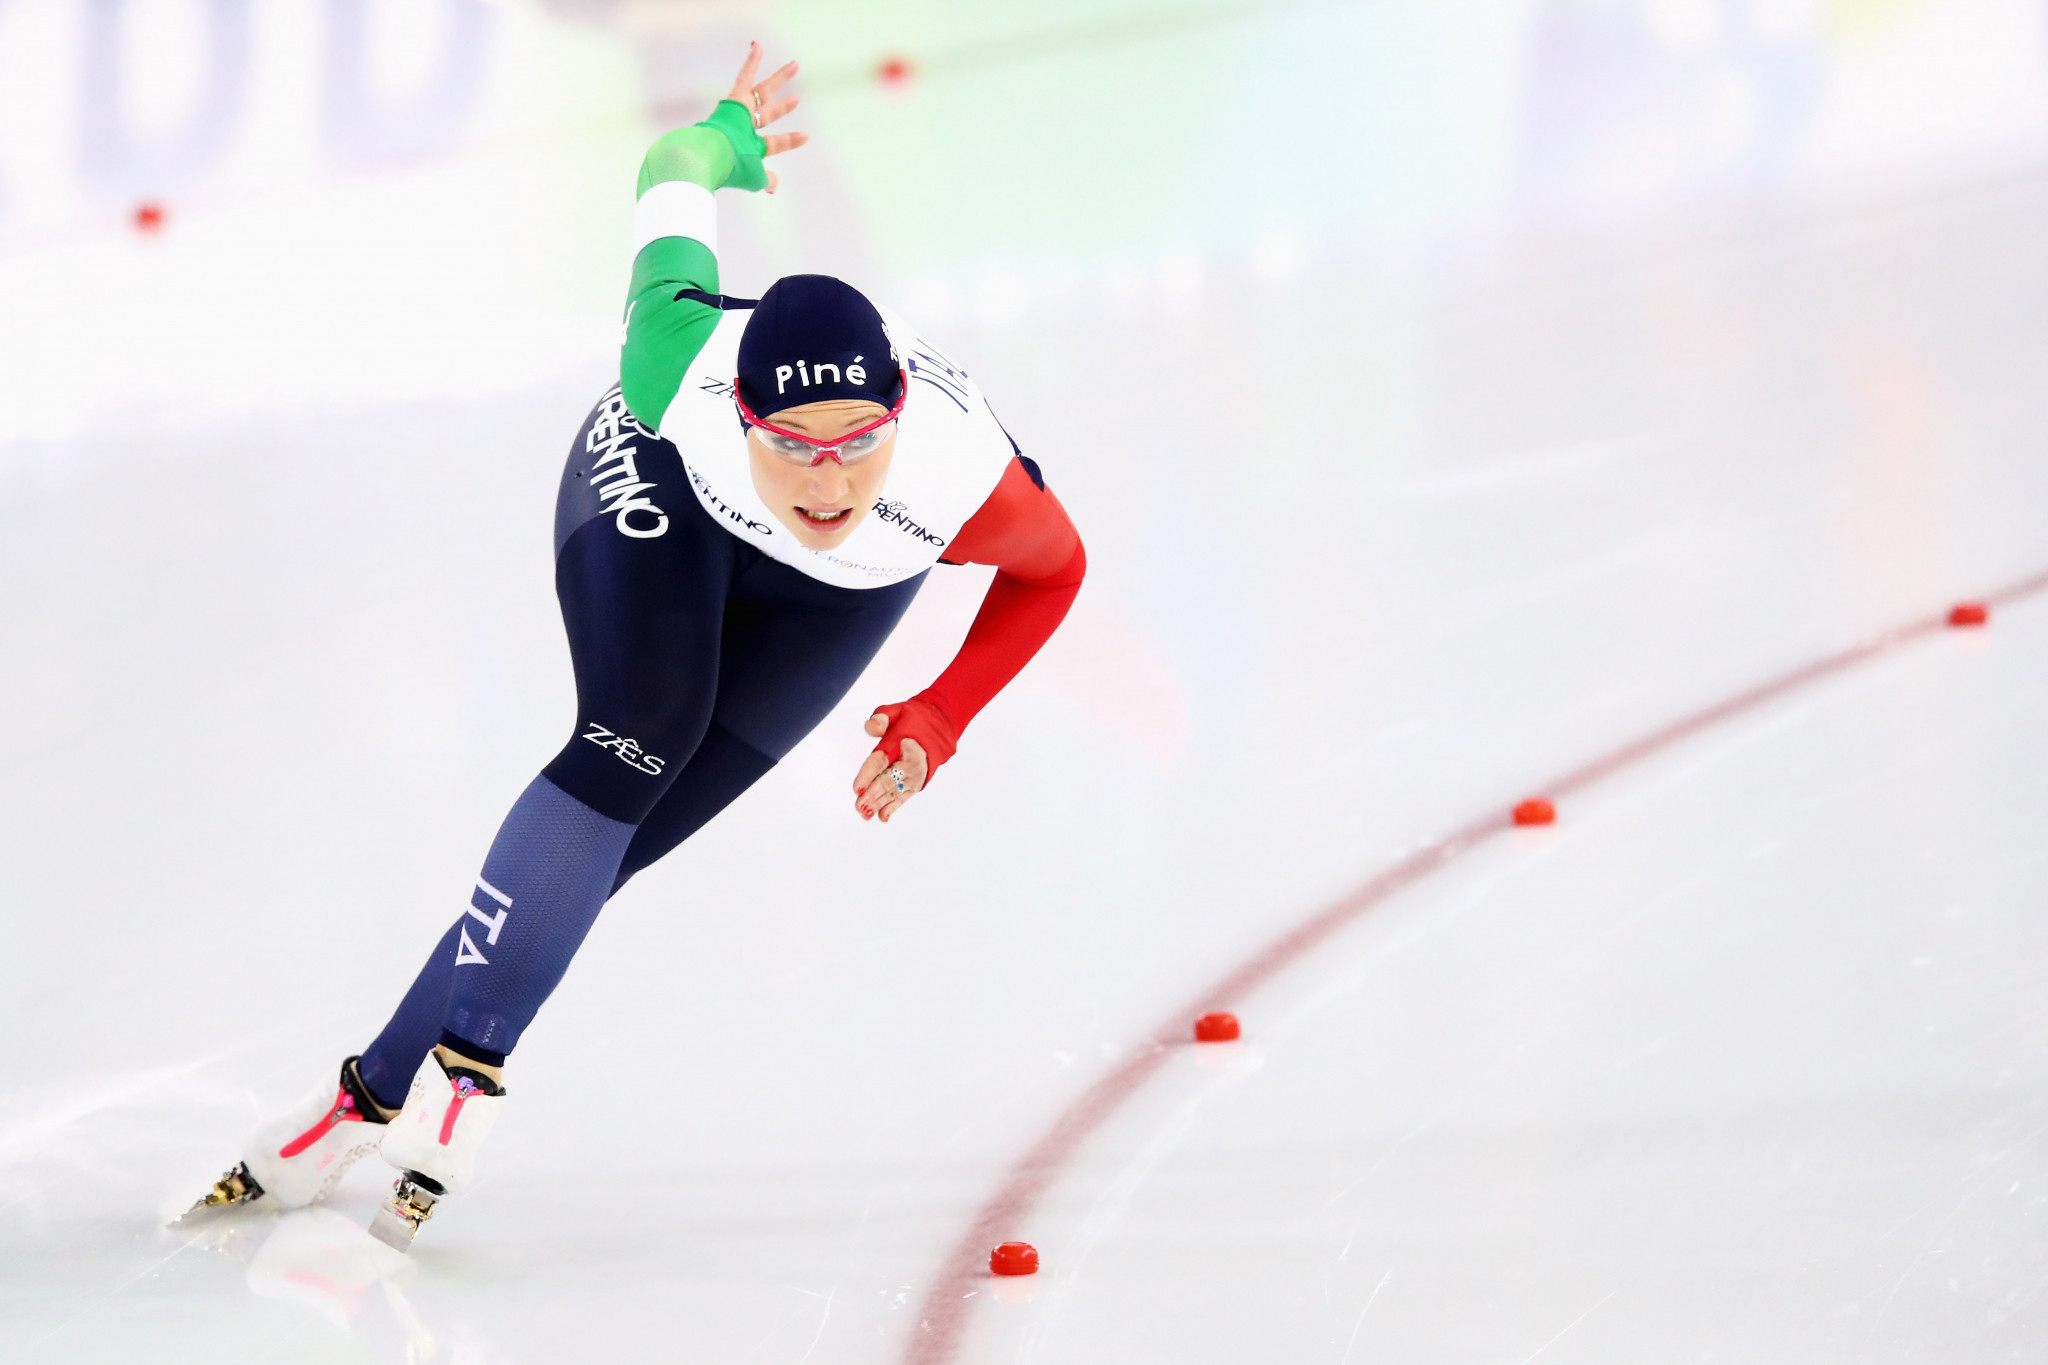 Italy's Francesca Lollobrigida broke clear to win the women's mass start ©Getty Images